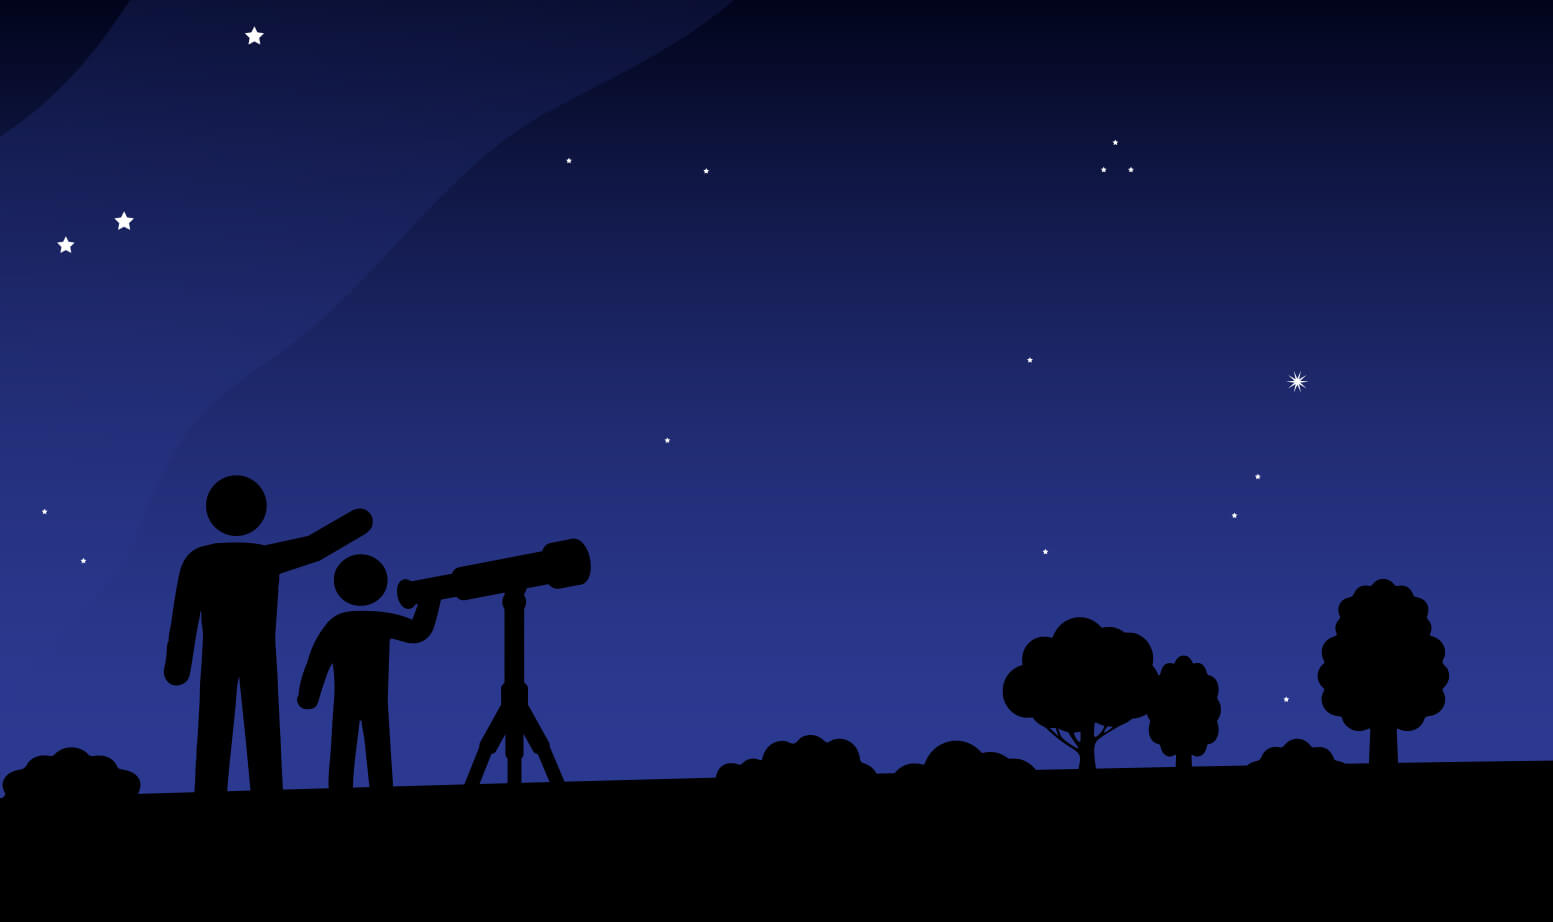 Illustration of the silhouettes of stargazers with a telescope.